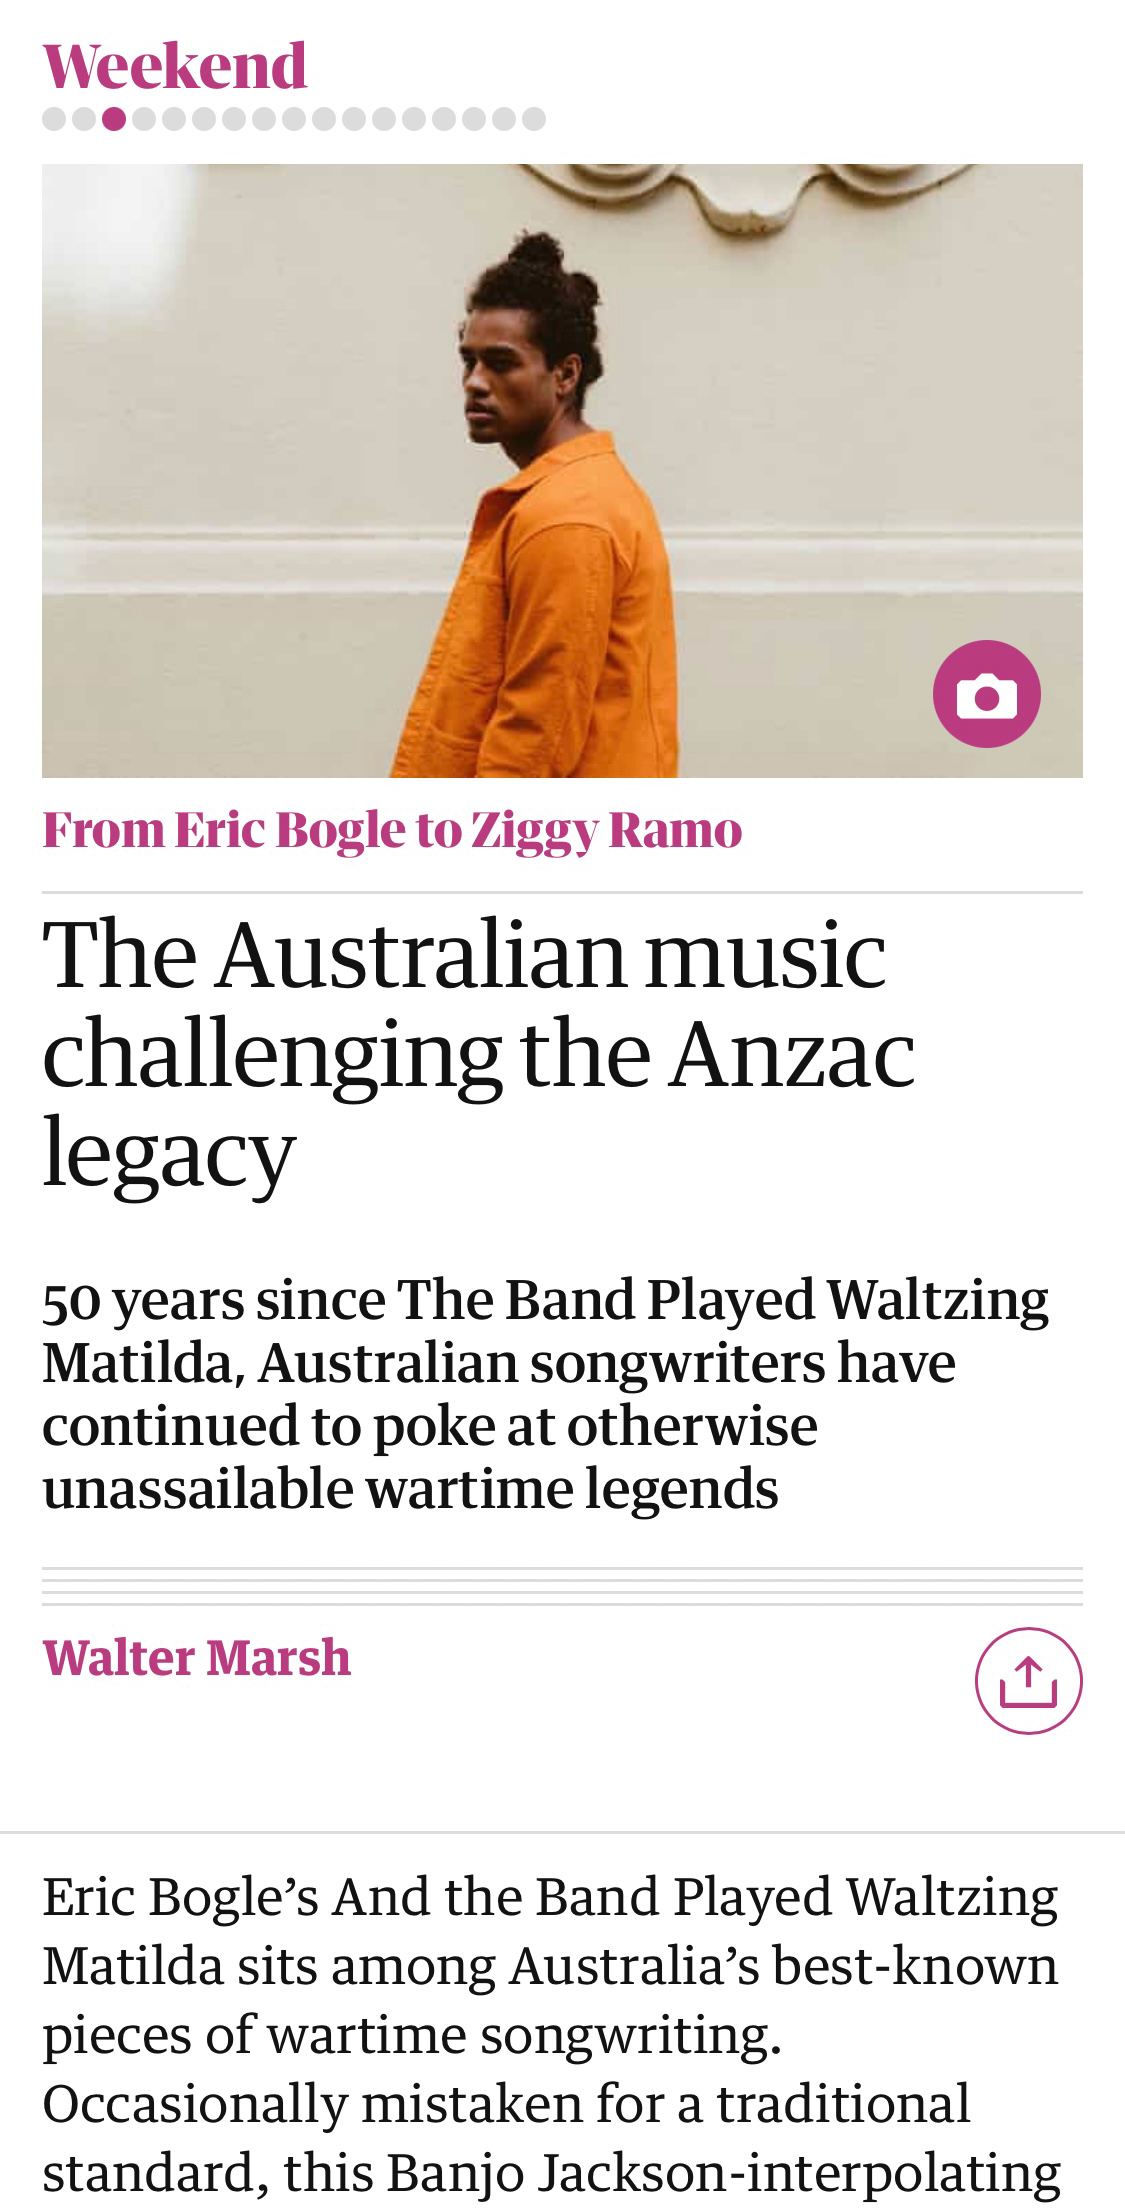 From Eric Bogle to Ziggy Ramo: the Australian music challenging the Anzac legacy for The Guardian